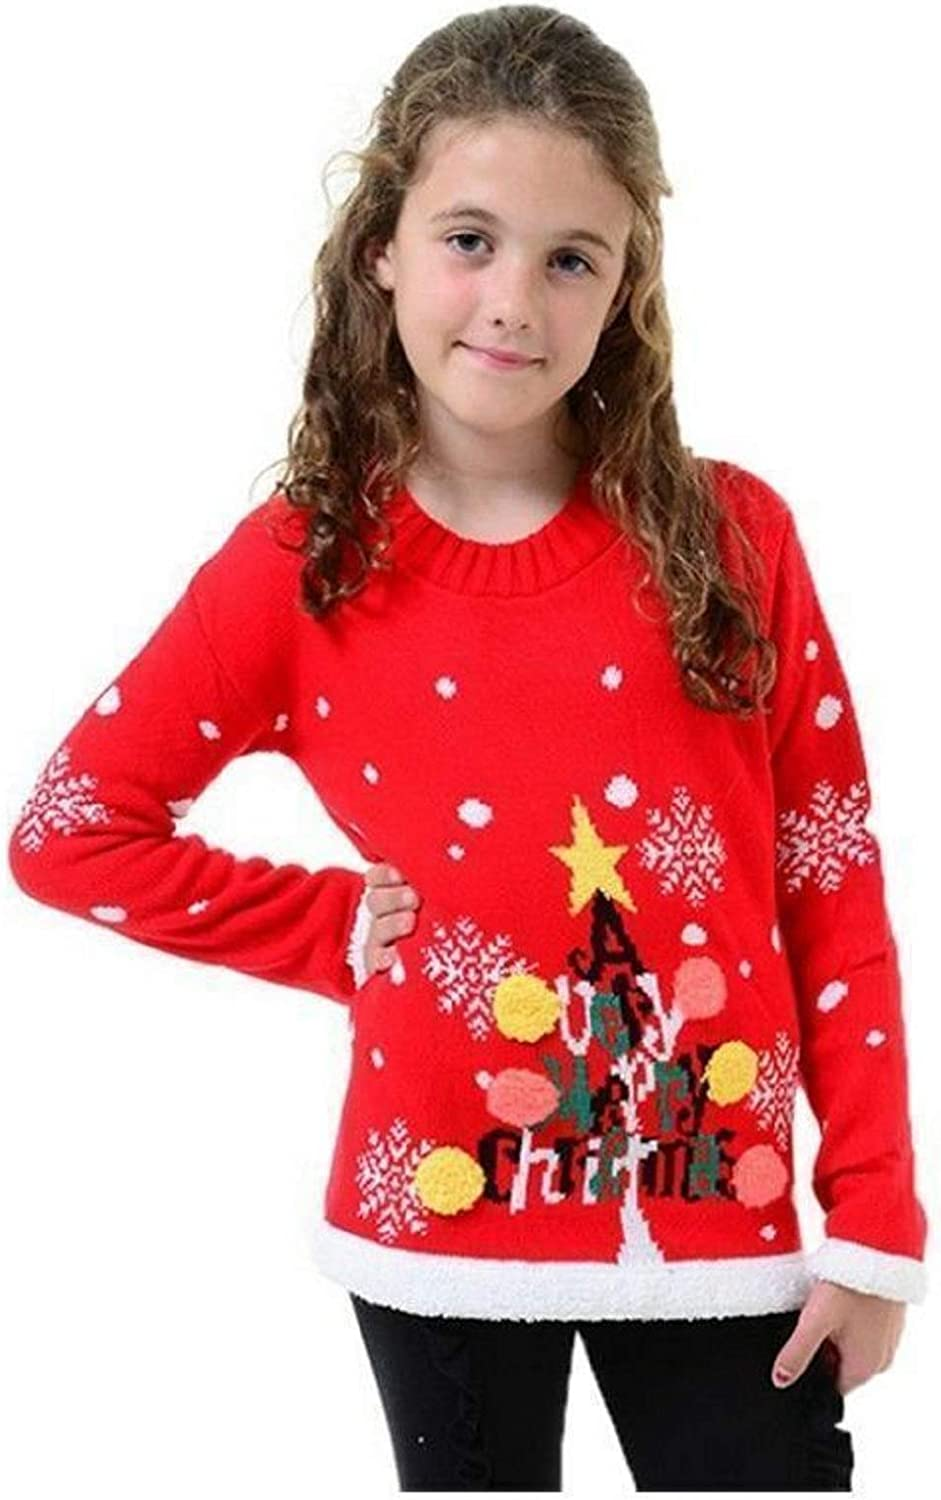 Kids Christmas Xmas Jumper Boys Sweater Girls Childrens New Retro Knitted Winter